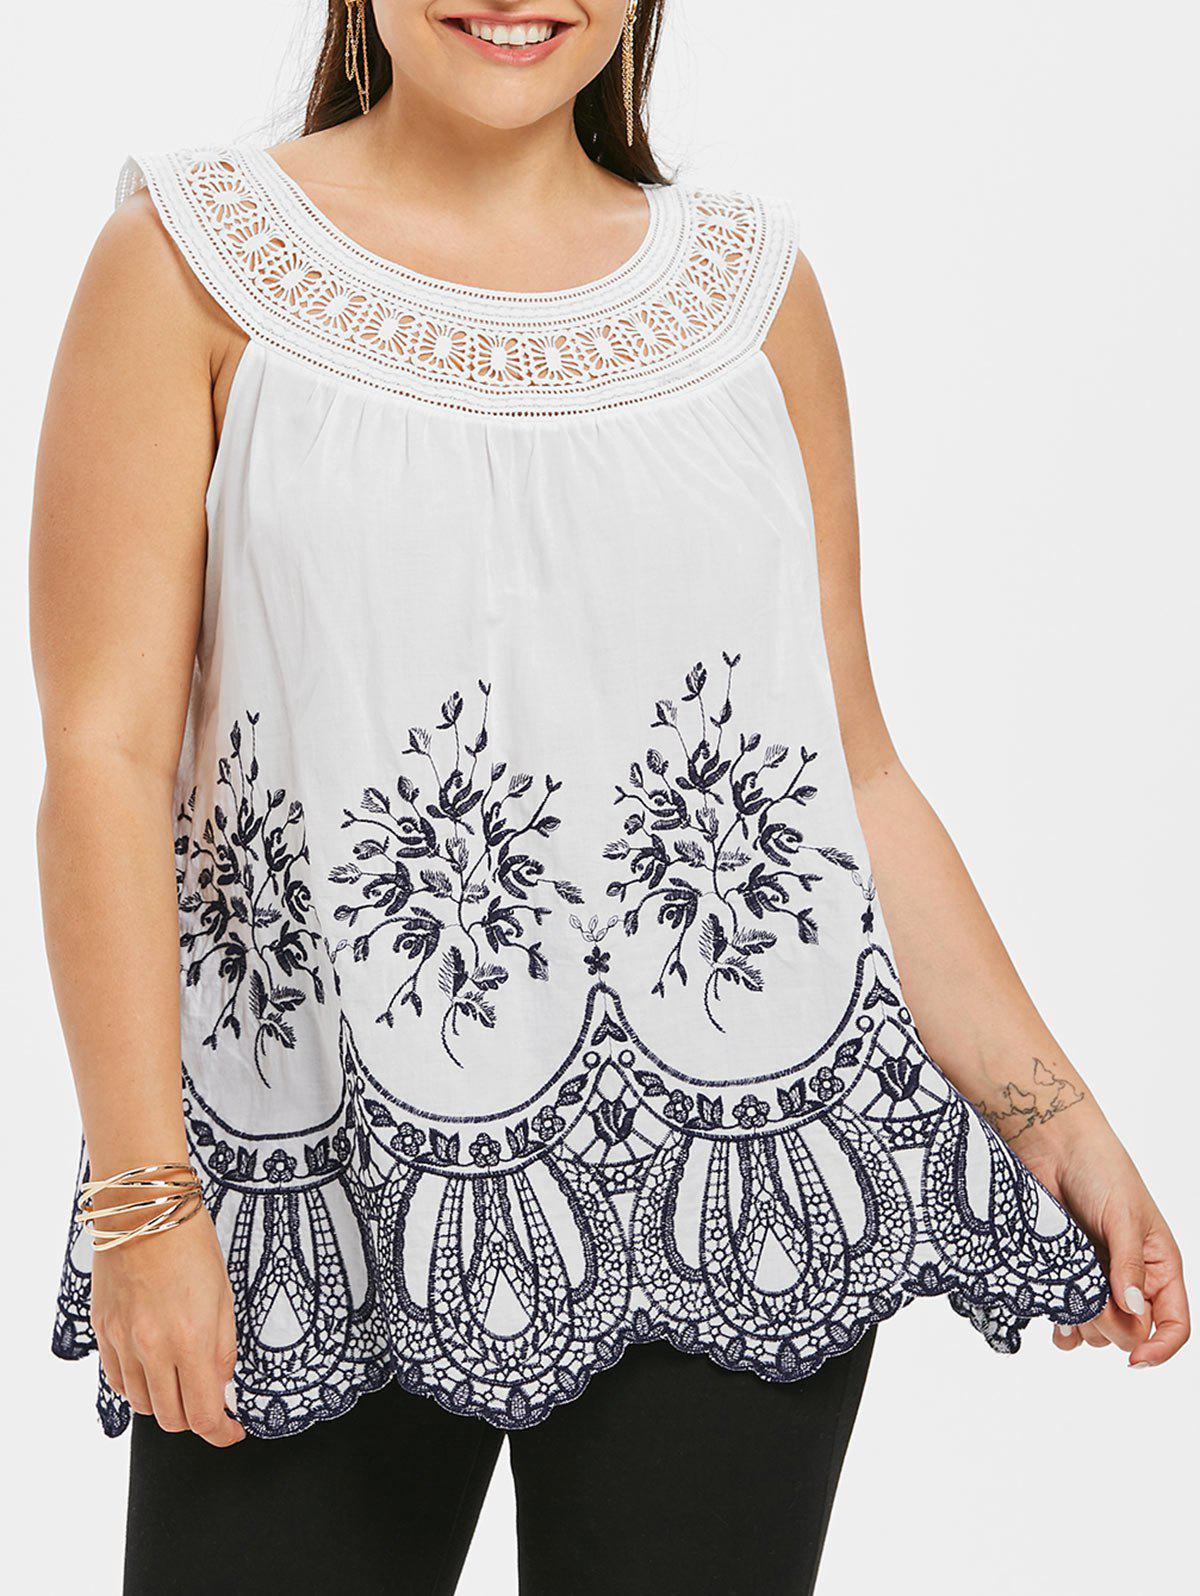 e743f7b6efa 45% OFF  Floral Embroidery Plus Size Crochet Top